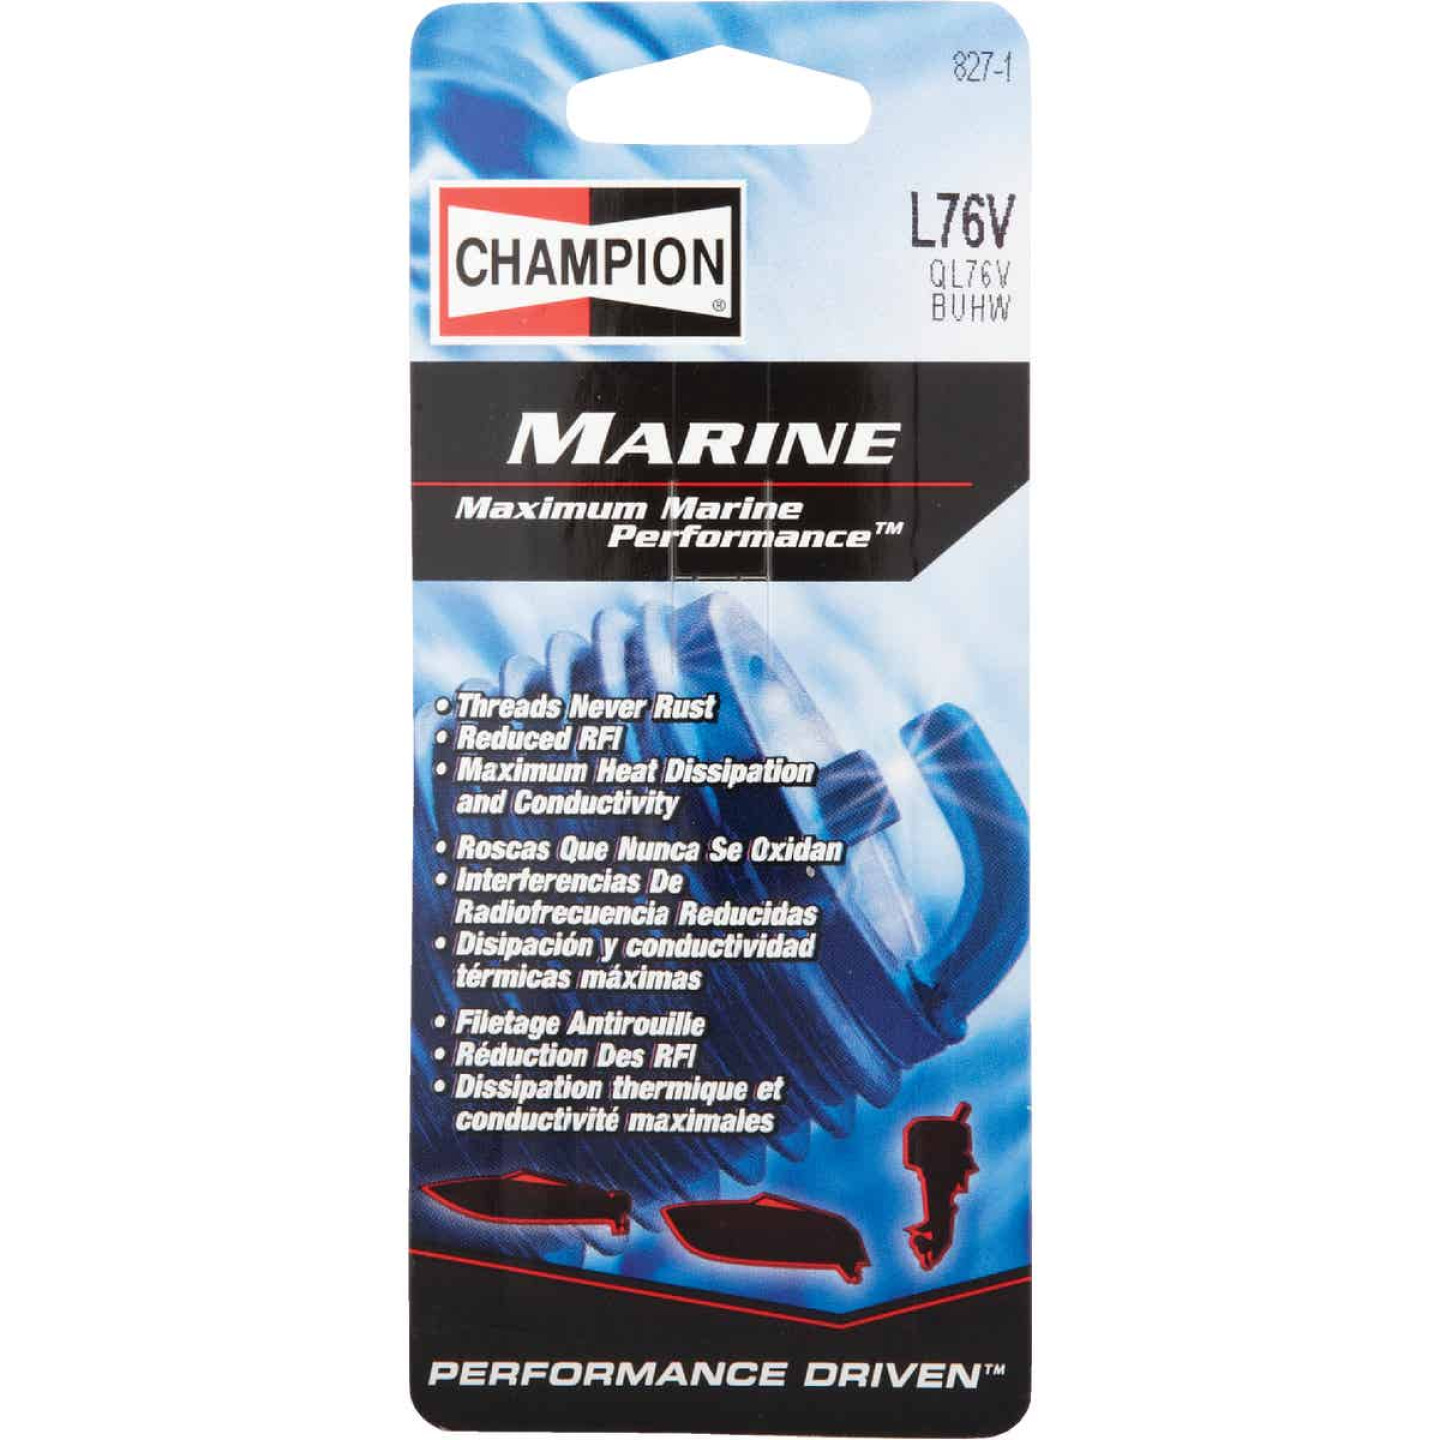 Champion L76V Copper Plus Marine Spark Plug Image 2